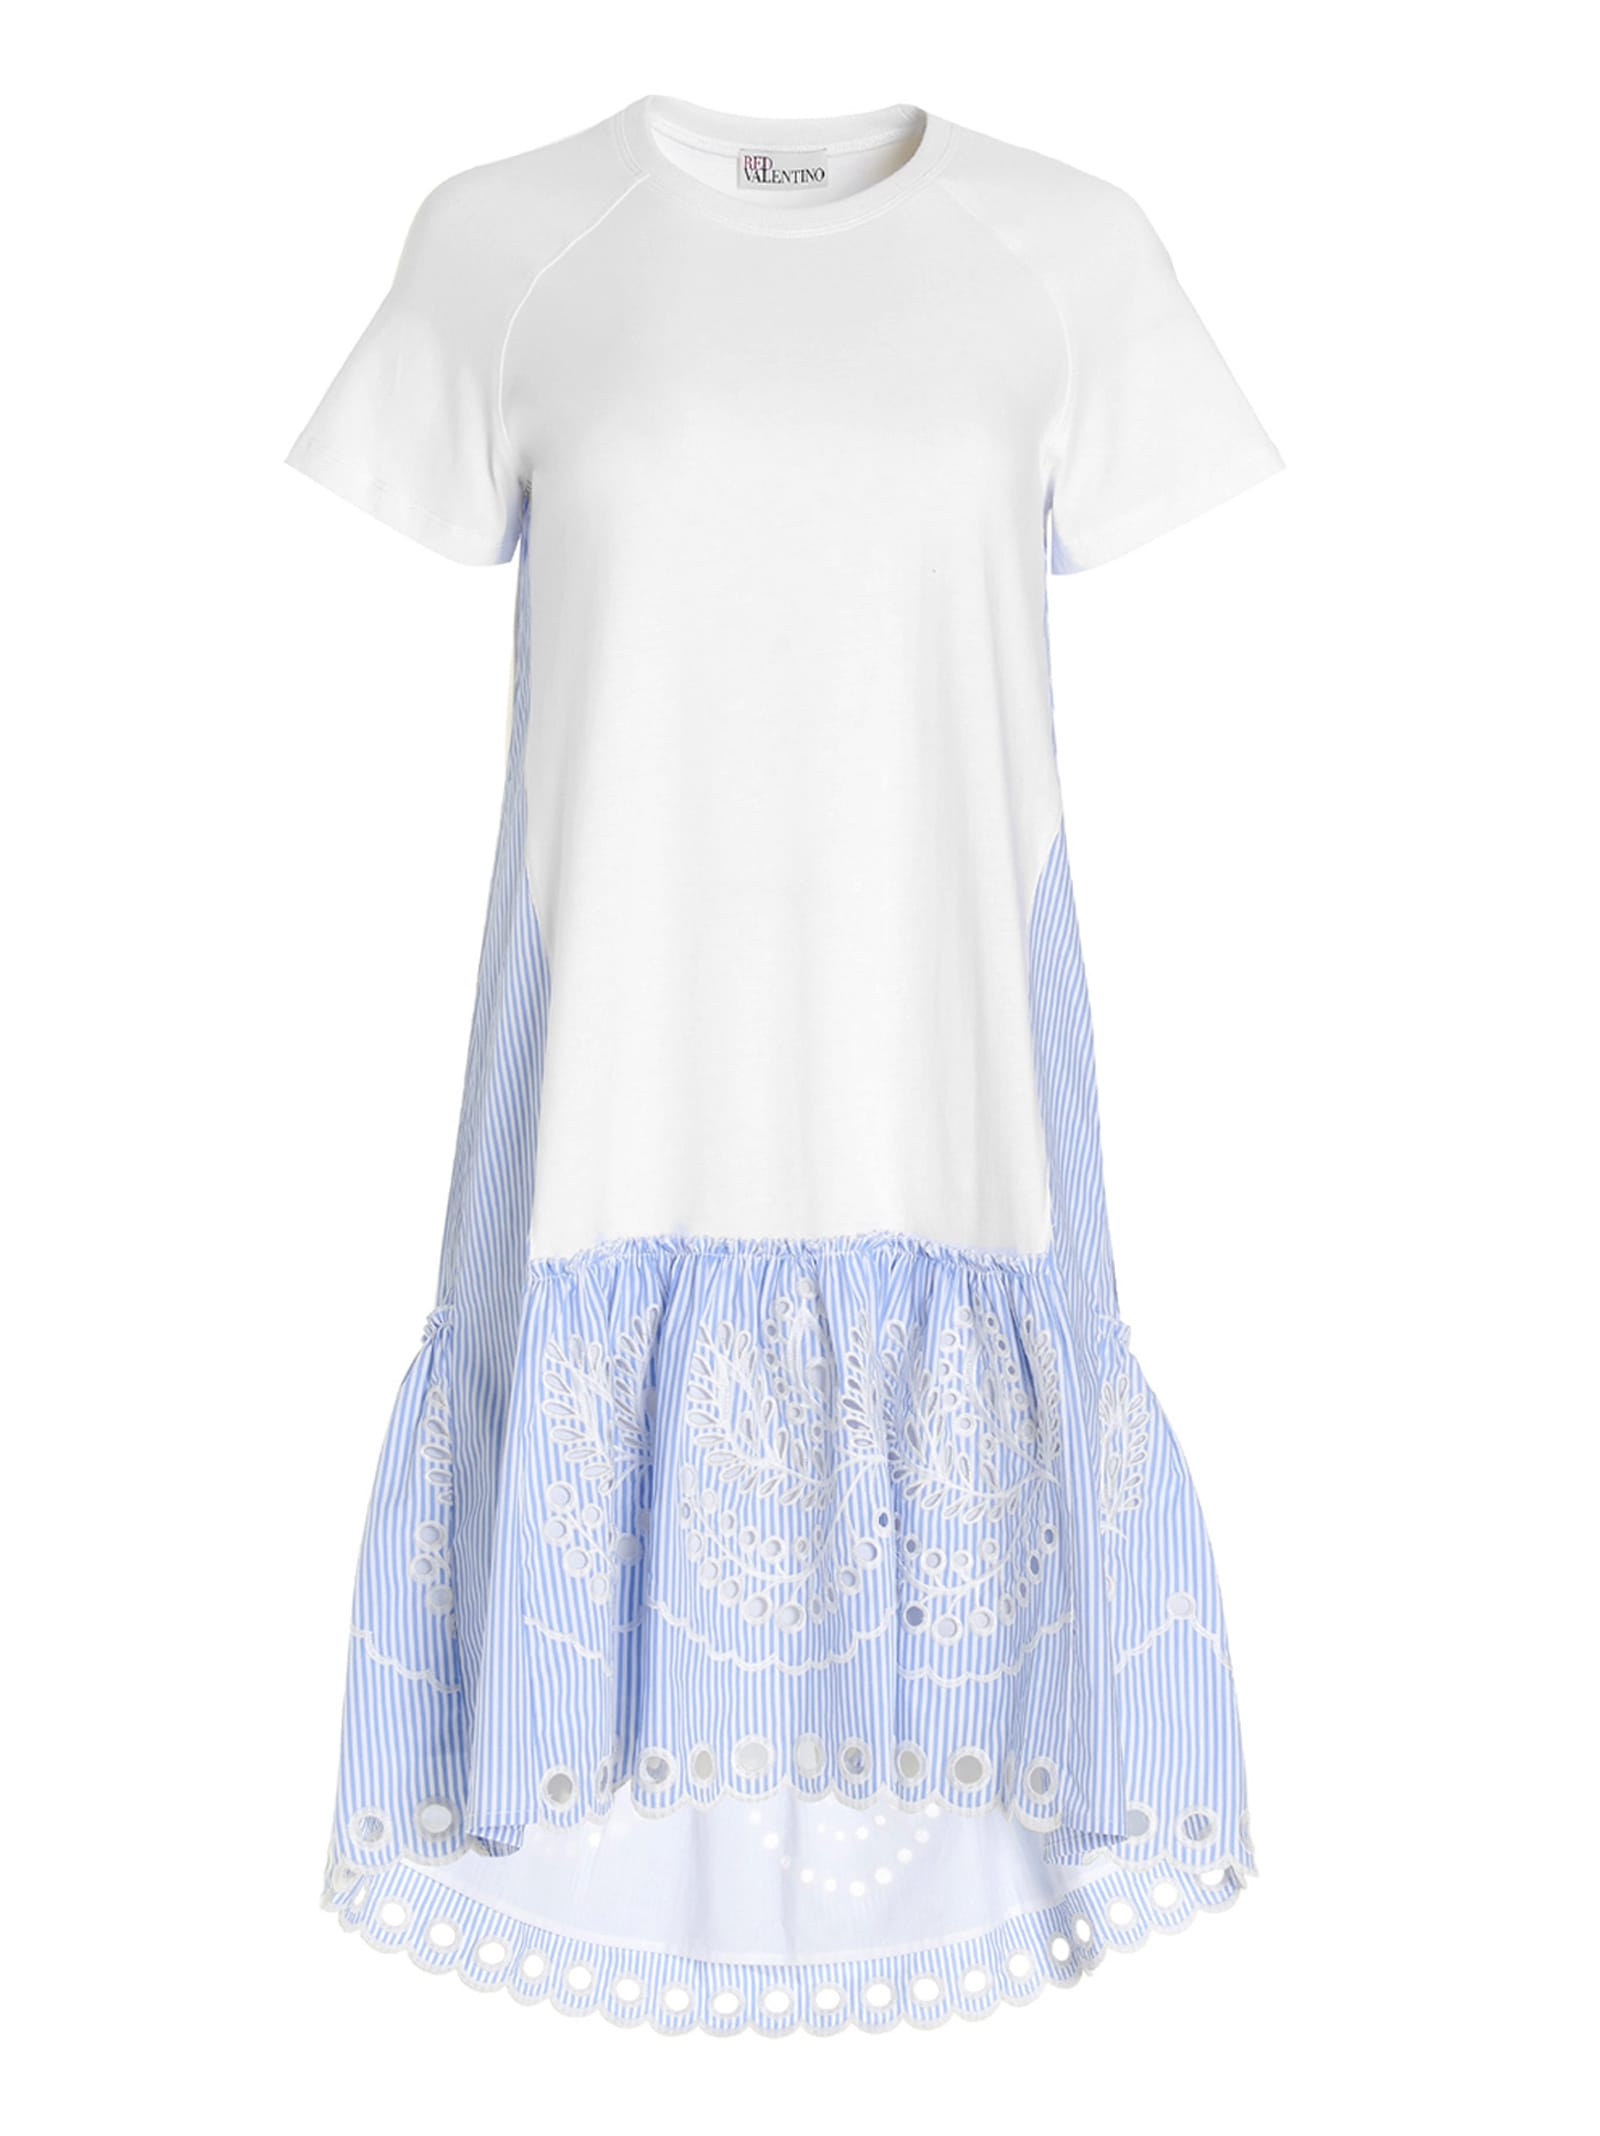 Buy Dress RED Valentino online, shop RED Valentino with free shipping